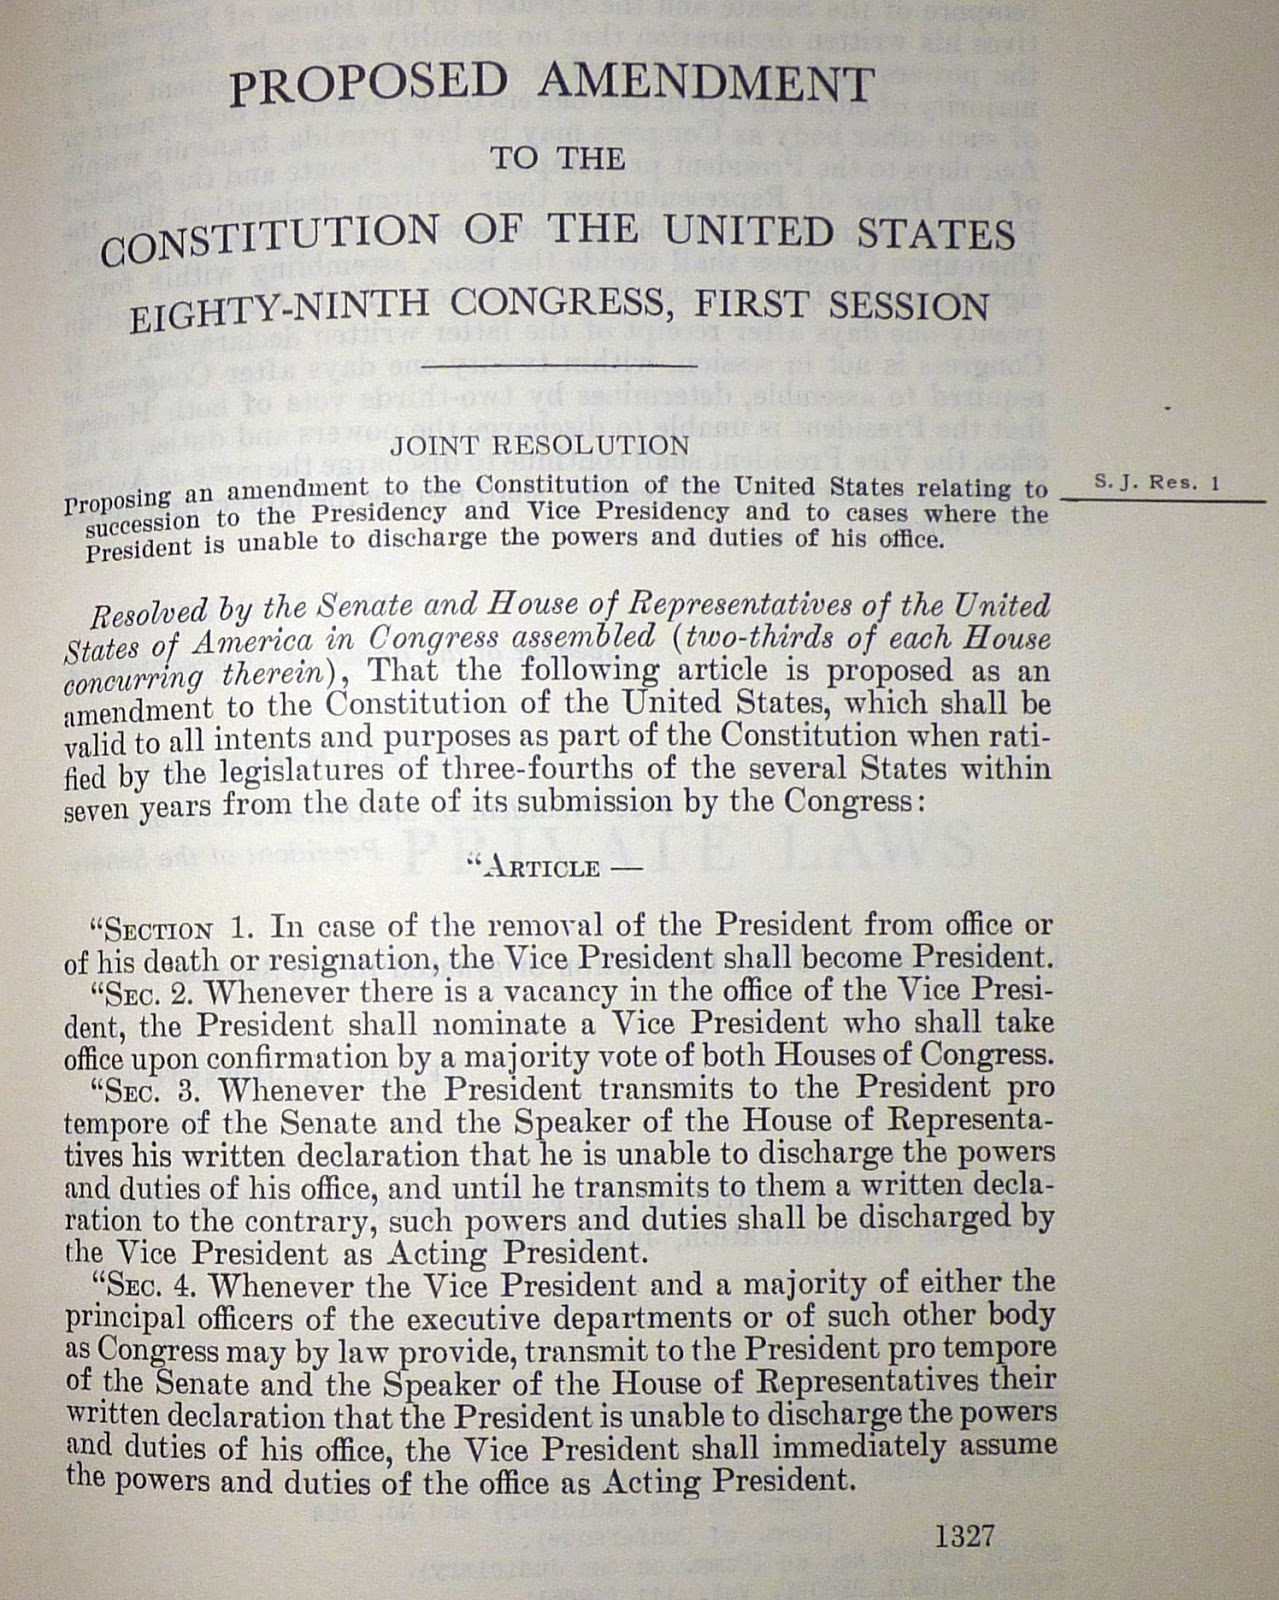 th amendment essay united states constitution and citizenship  united states constitution and citizenship day 25th amendment 1965 and reorganization plans proposed amendment to the